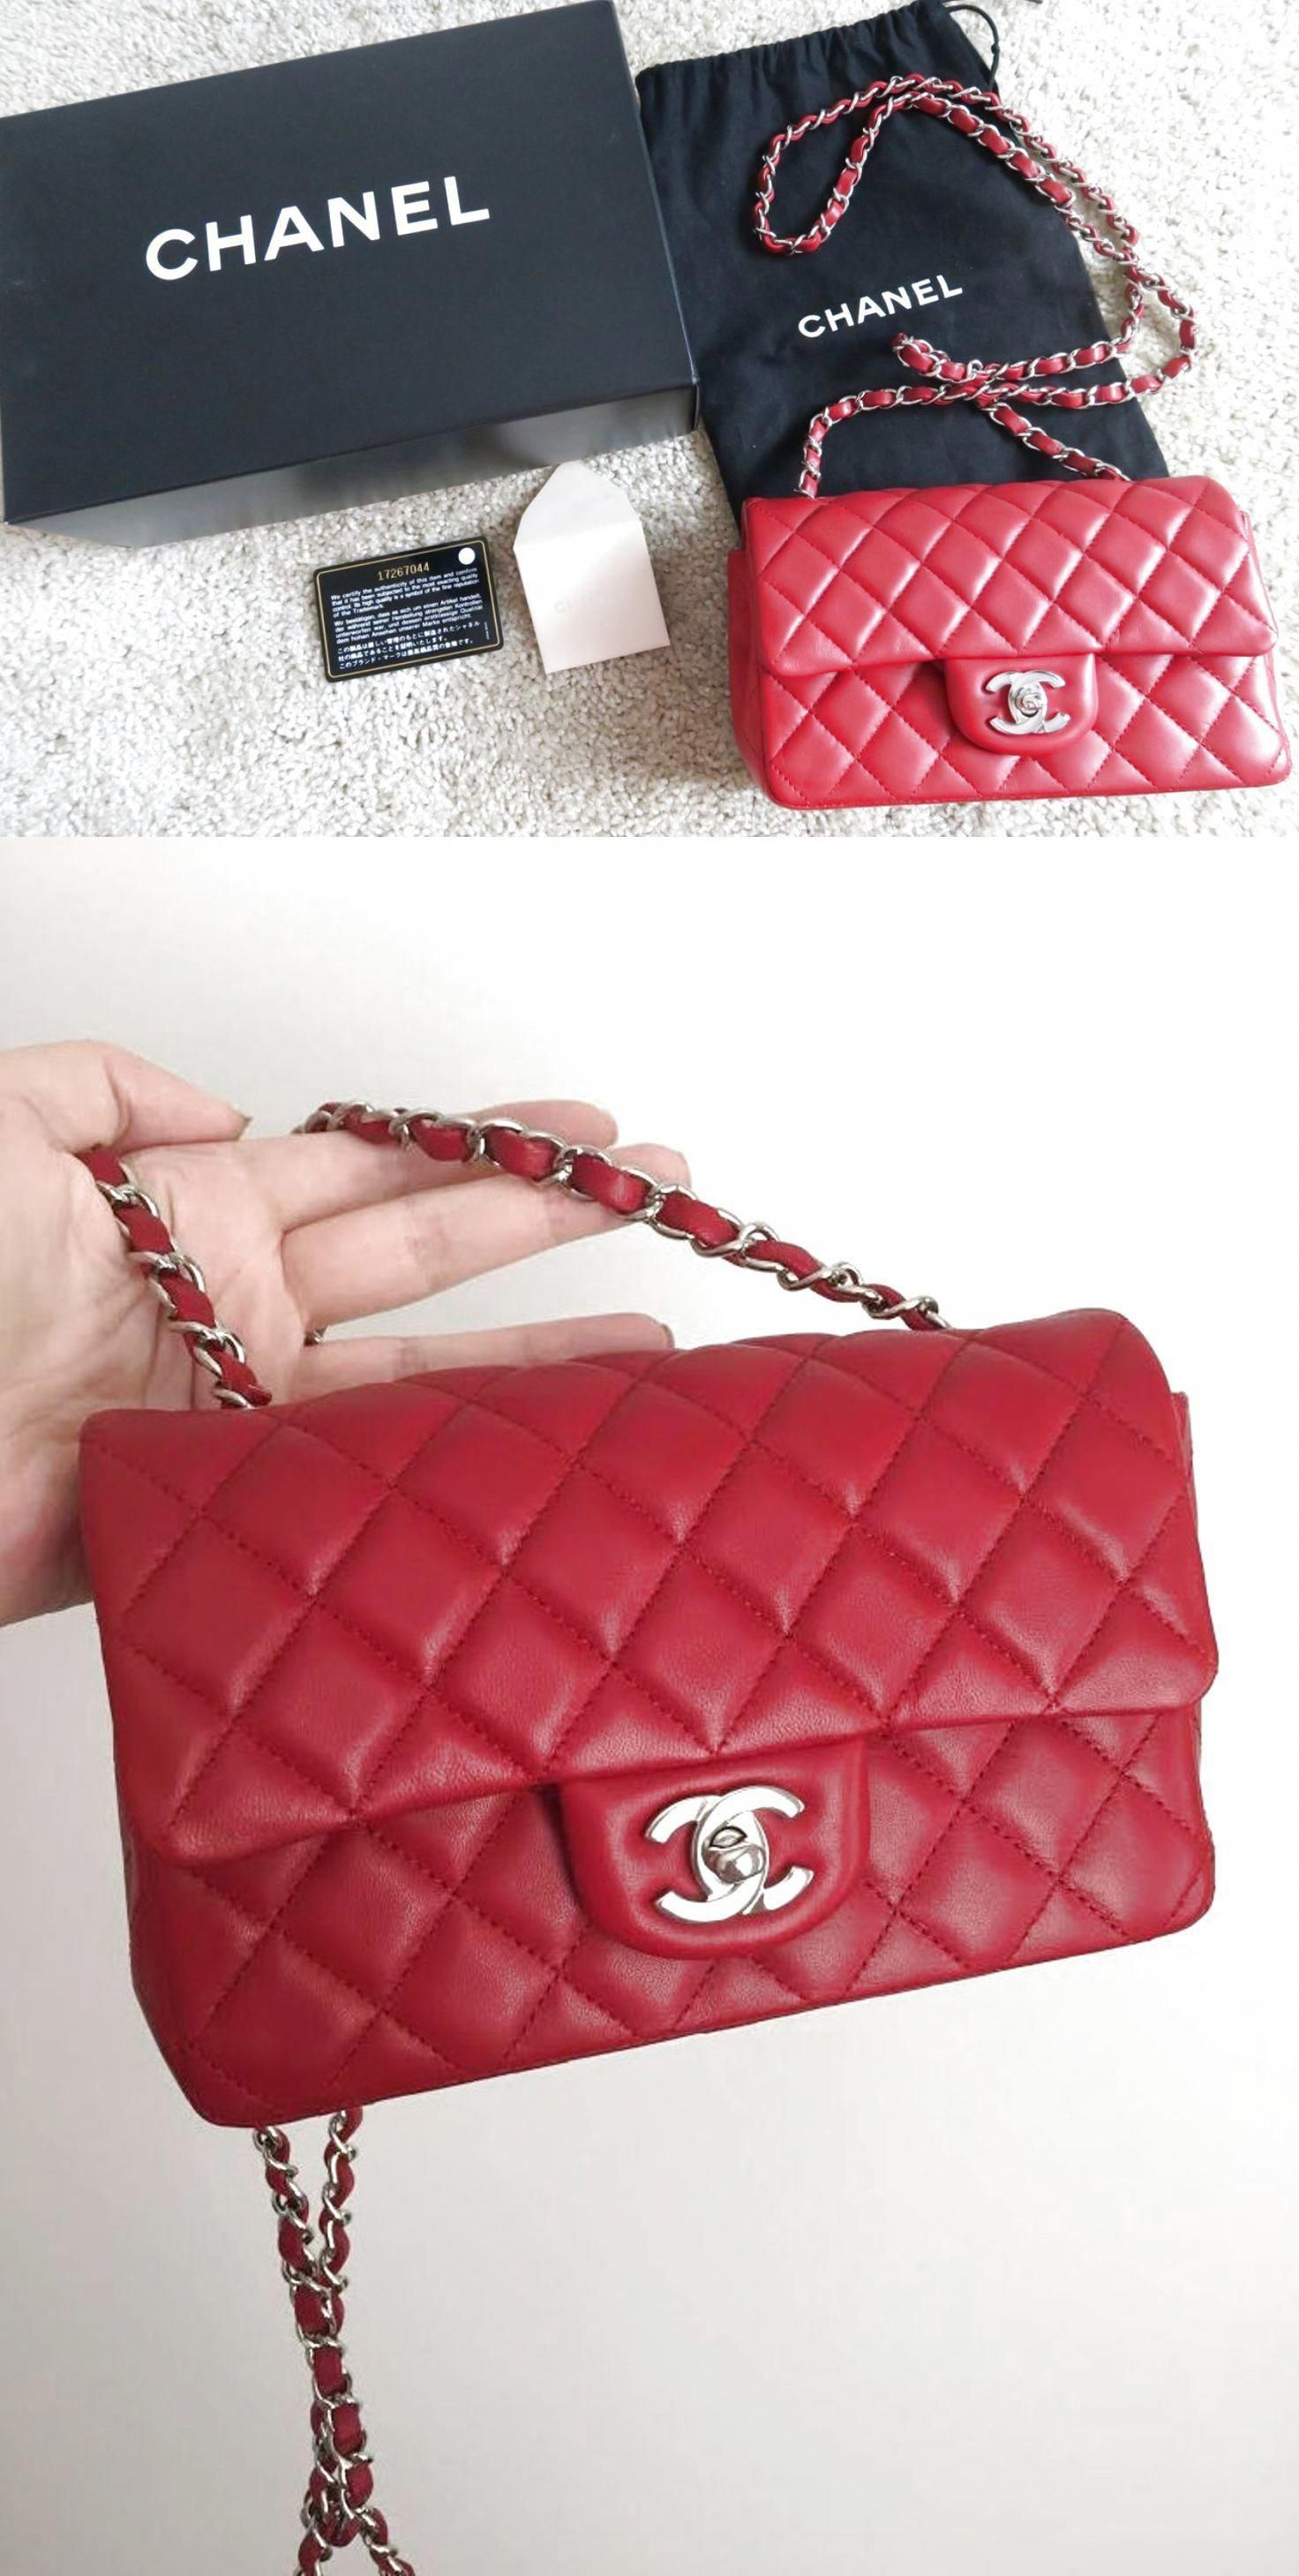 d061fa4d967d CHANEL Red Lambskin Classic Mini Flap Bag! Rectangle Silver Chain! SOLD OUT  Auth $3000.0 #Chanelhandbags